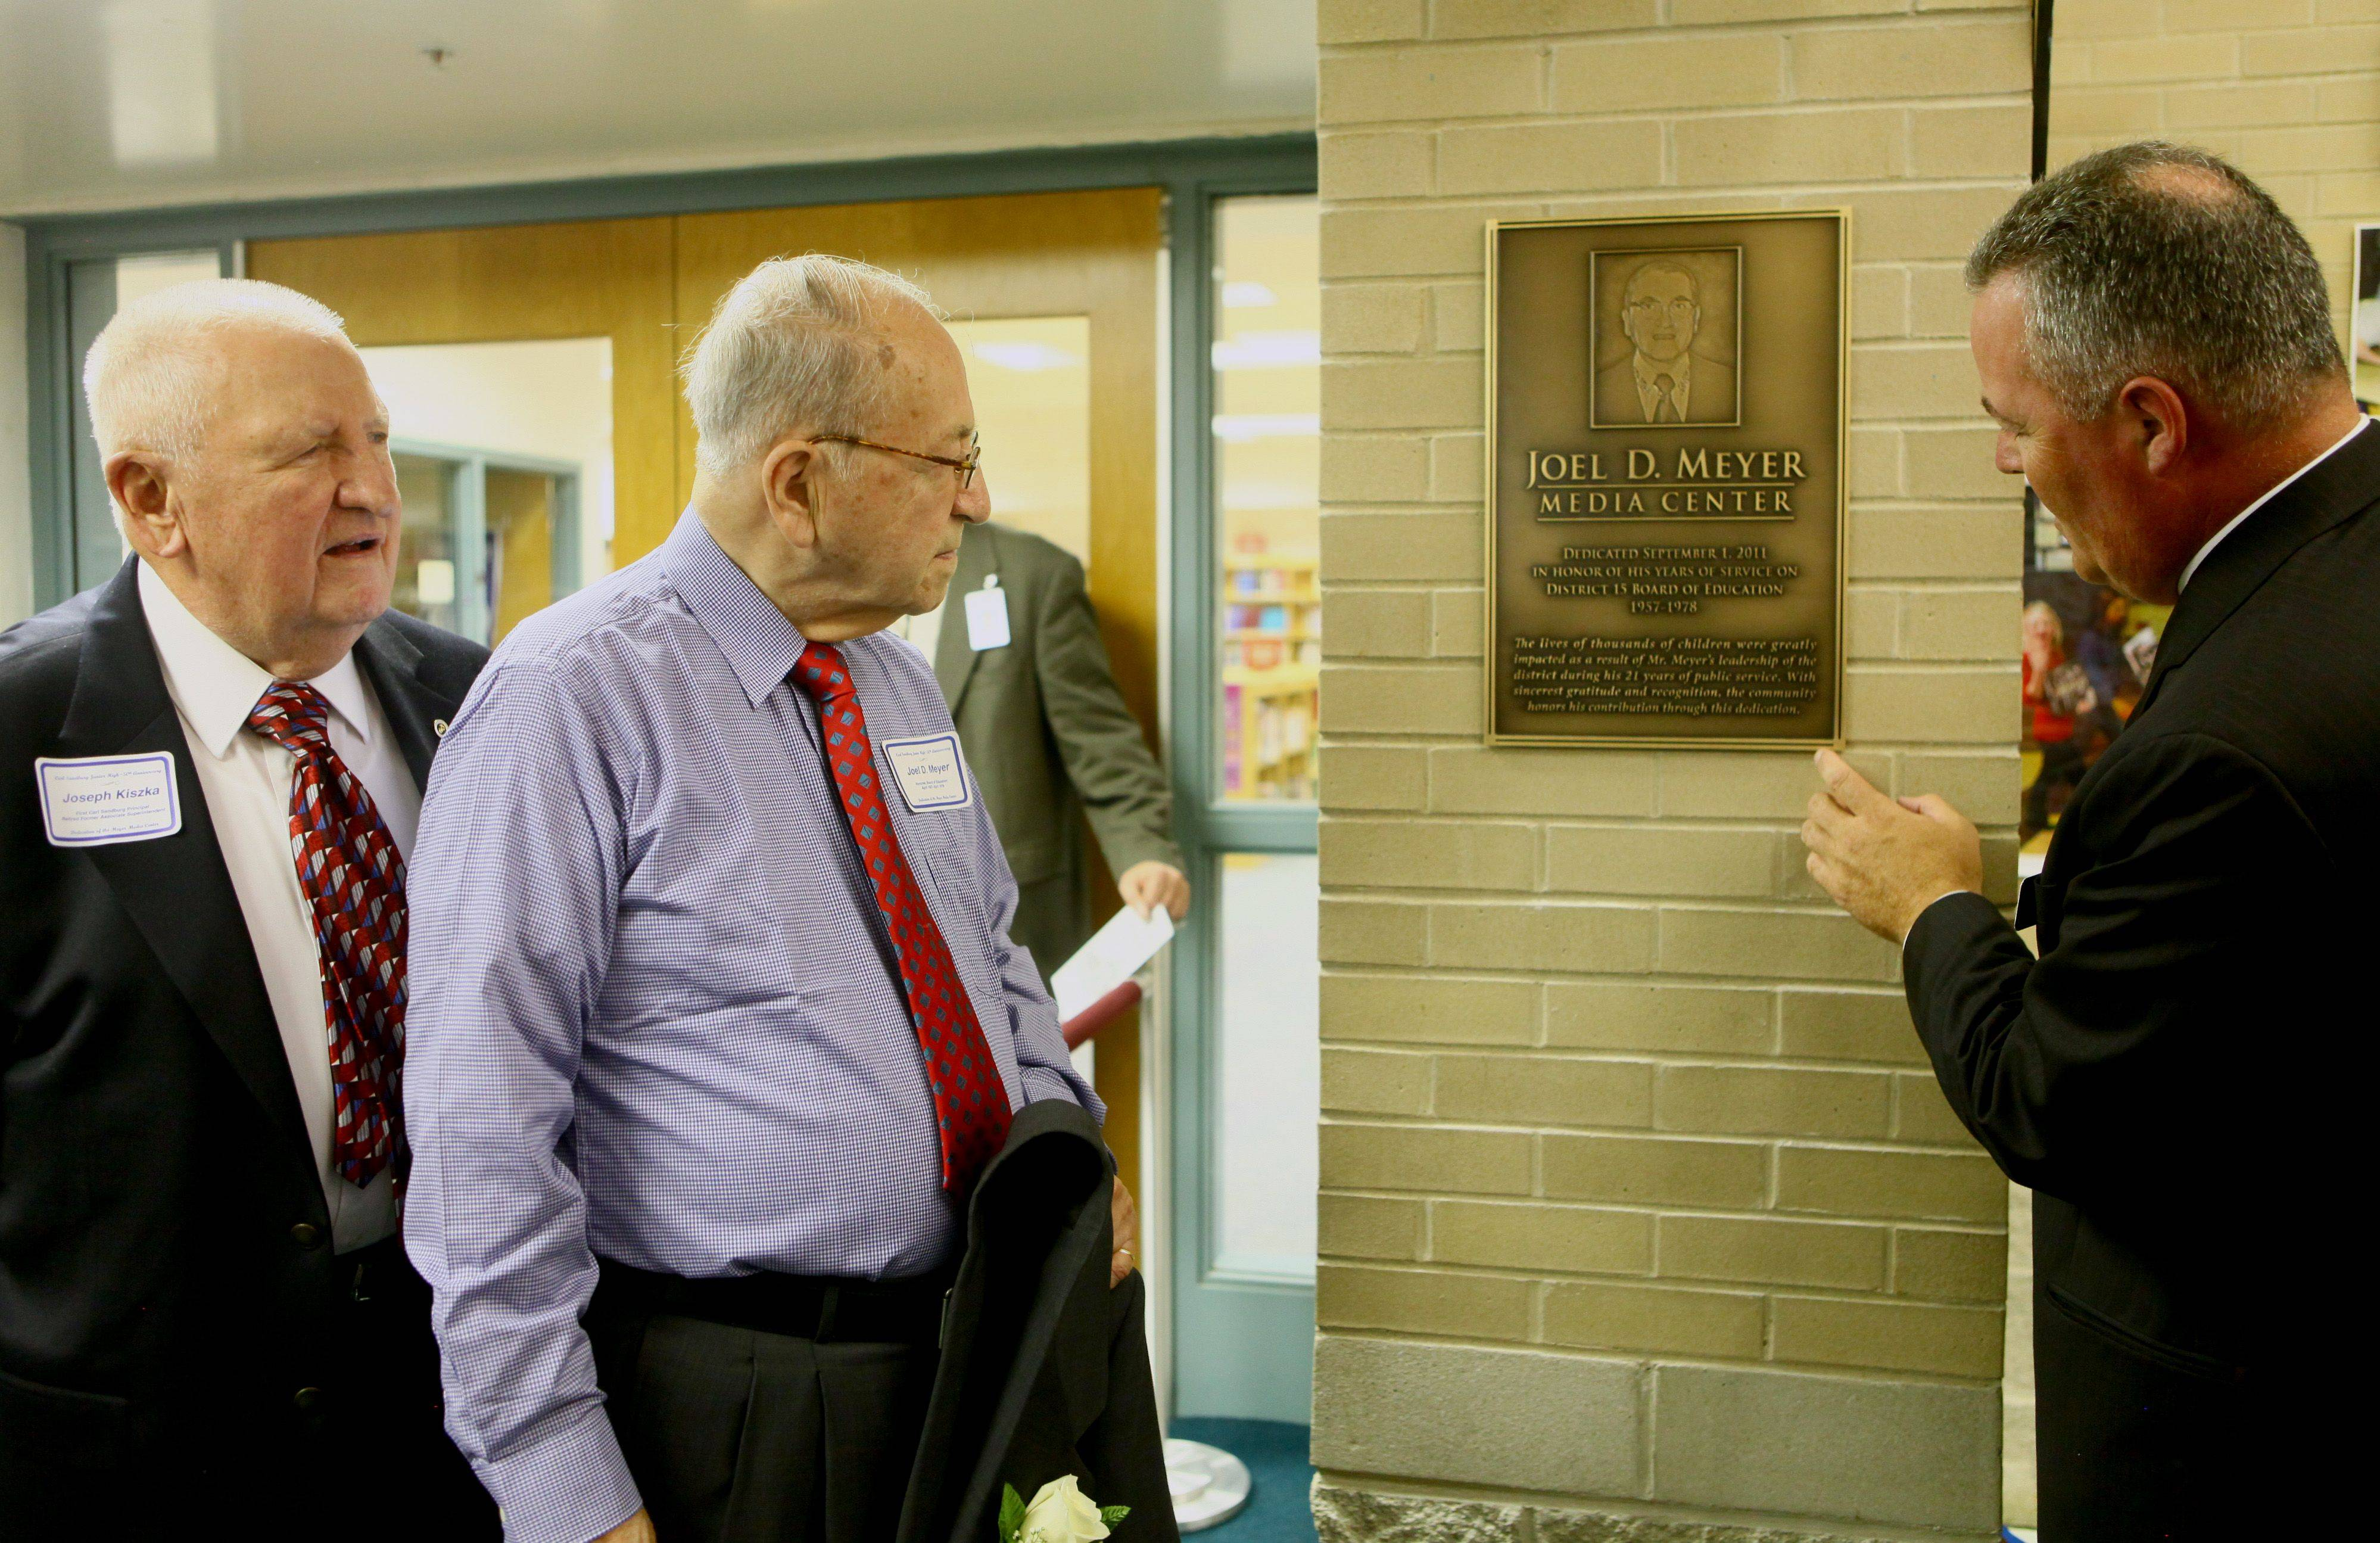 Palatine Township Elementary District 15 Superintendent Scott Thompson, right, shows Joel Meyer and Joseph Kiszka, far left, Carl Sandburg Junior High�s first principal, the plaque in front on the new media center dedicated to Meyer.